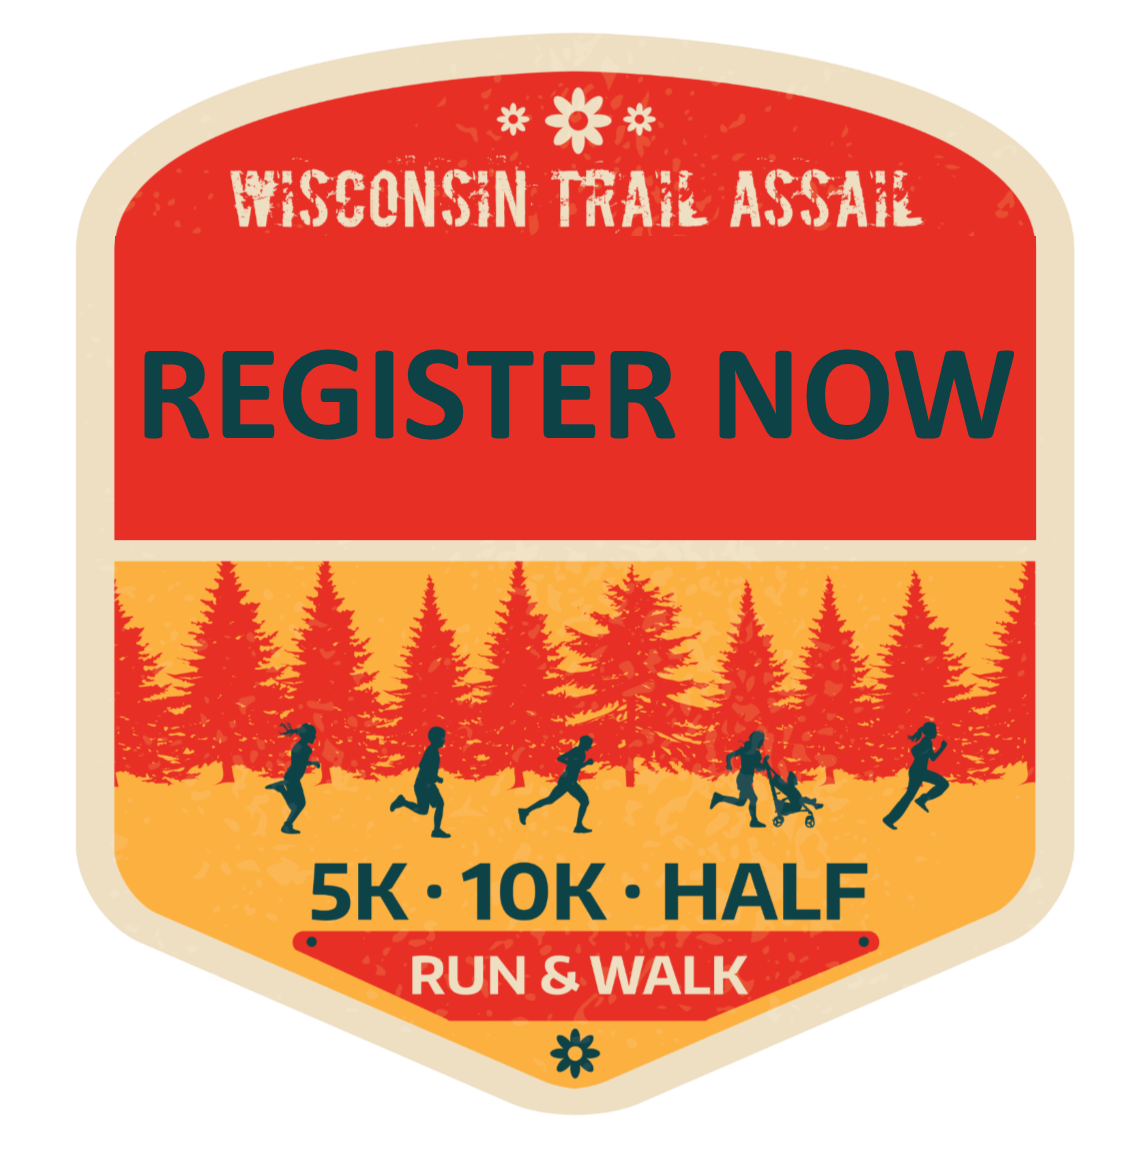 Wisconsin Trail Assail Series Silver Circle Sports Events